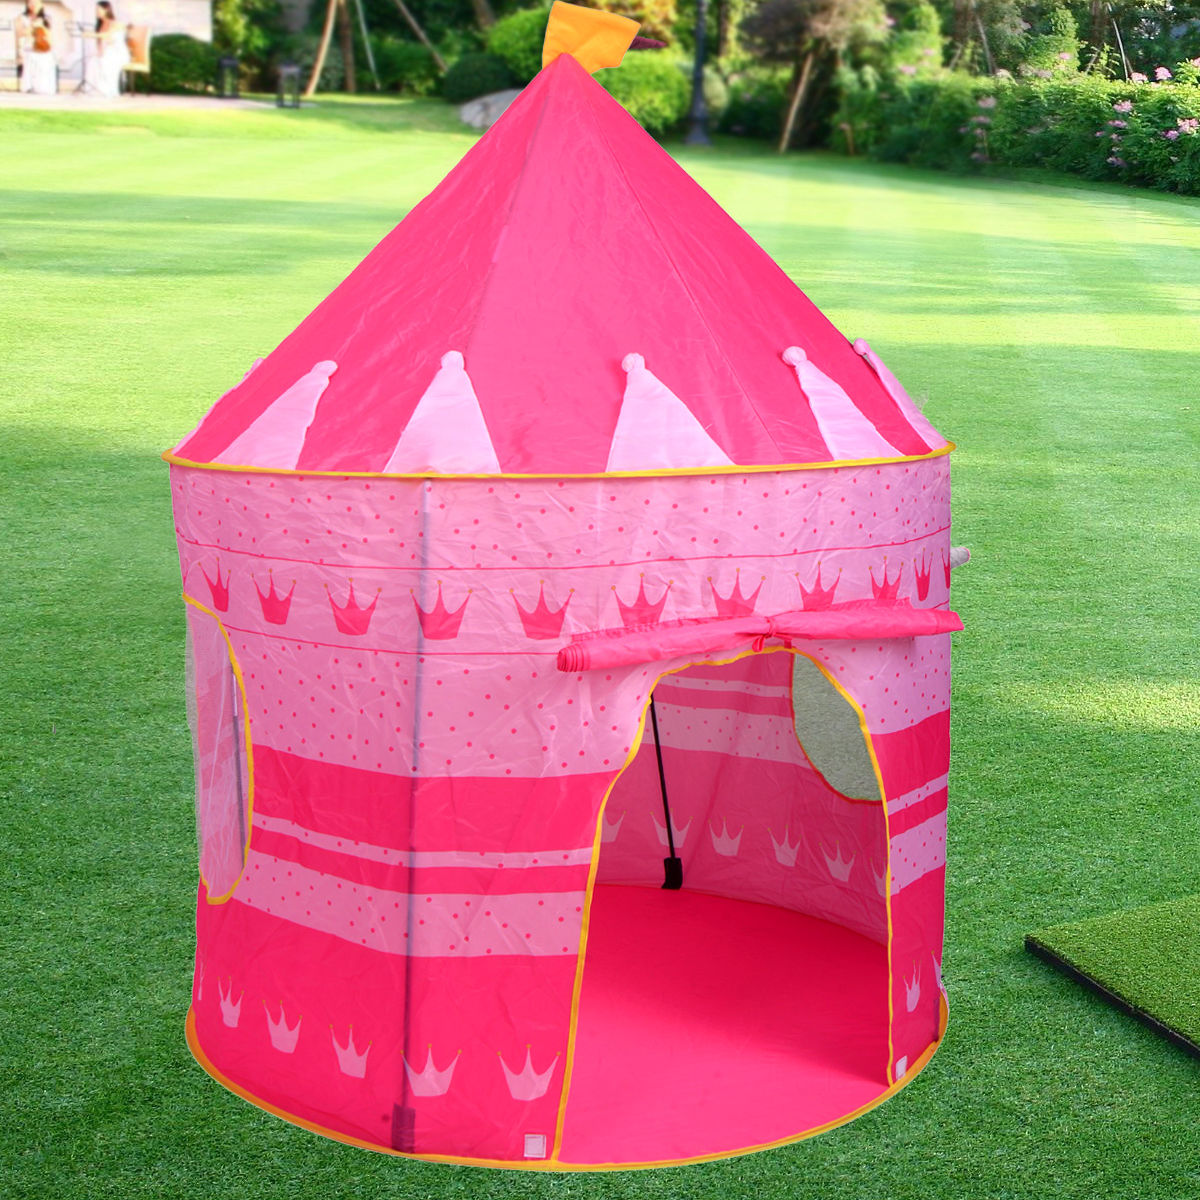 Portable Pop Up Play Tent Kids Girl Princess Castle Outdoor Play House Pink & Portable Pop Up Play Tent Kids Girl Princess Castle Outdoor Play ...